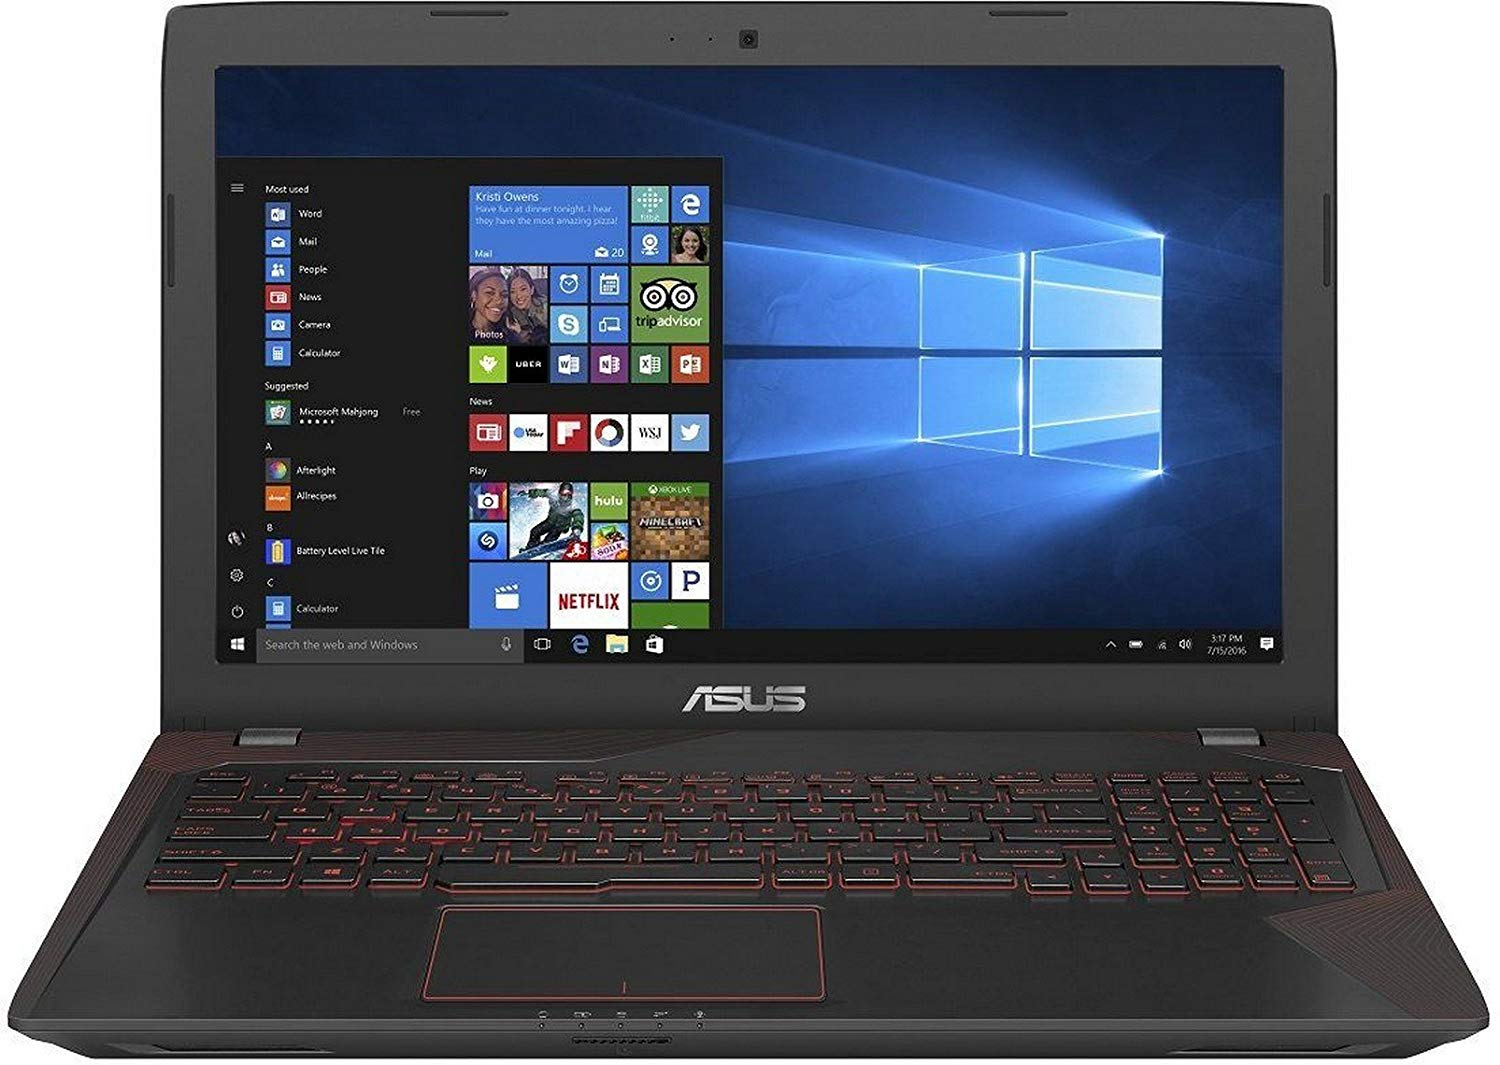 Asus FX553VD-DM1031T 15.6-inch Laptop